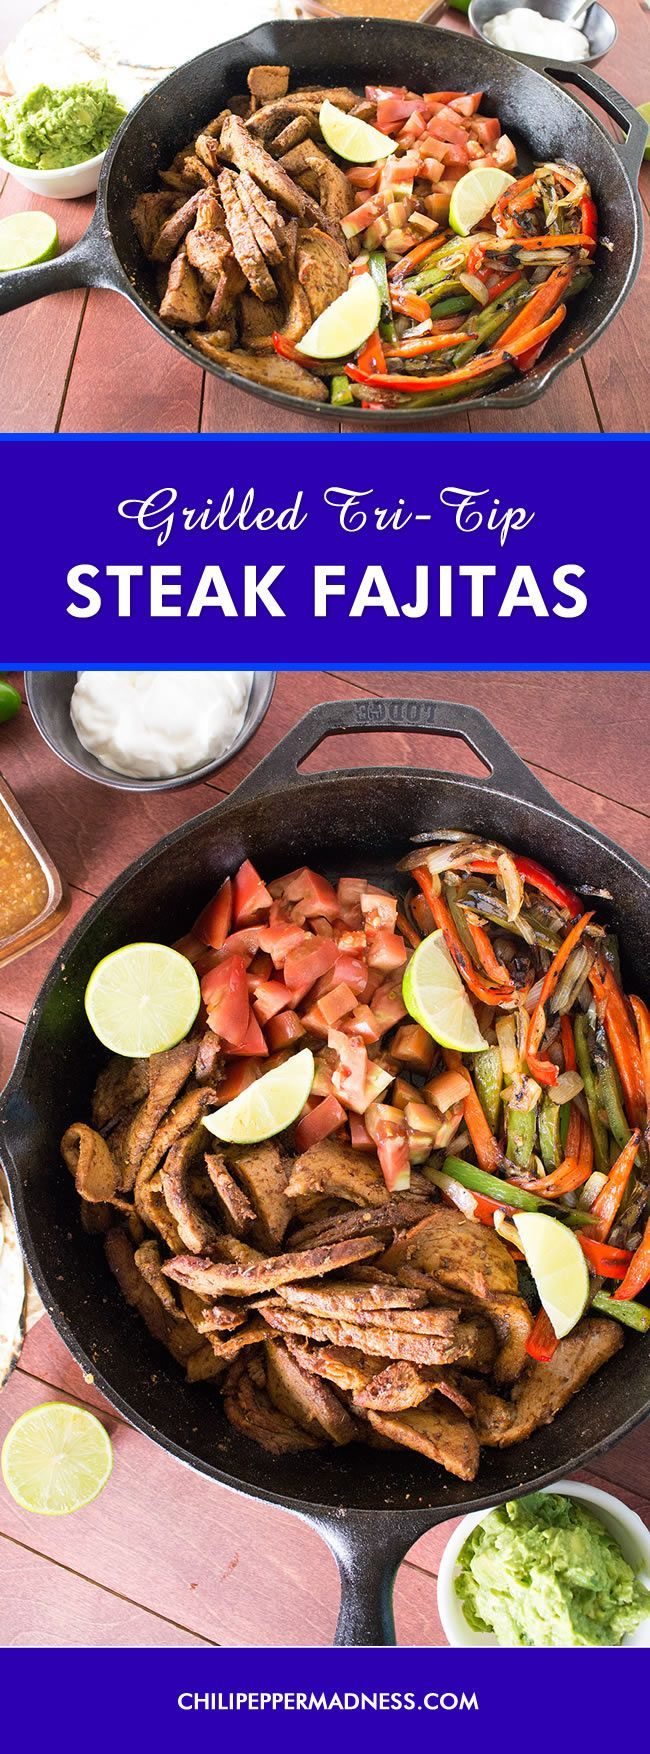 Grilled Tri-Tip Steak Fajitas - Every night is fajita night with this recipe for perfectly grilled tri-tip roast rubbed down with homemade fajita seasoning, served with warmed flour tortillas, guacamole and plenty of grilled chili peppers.